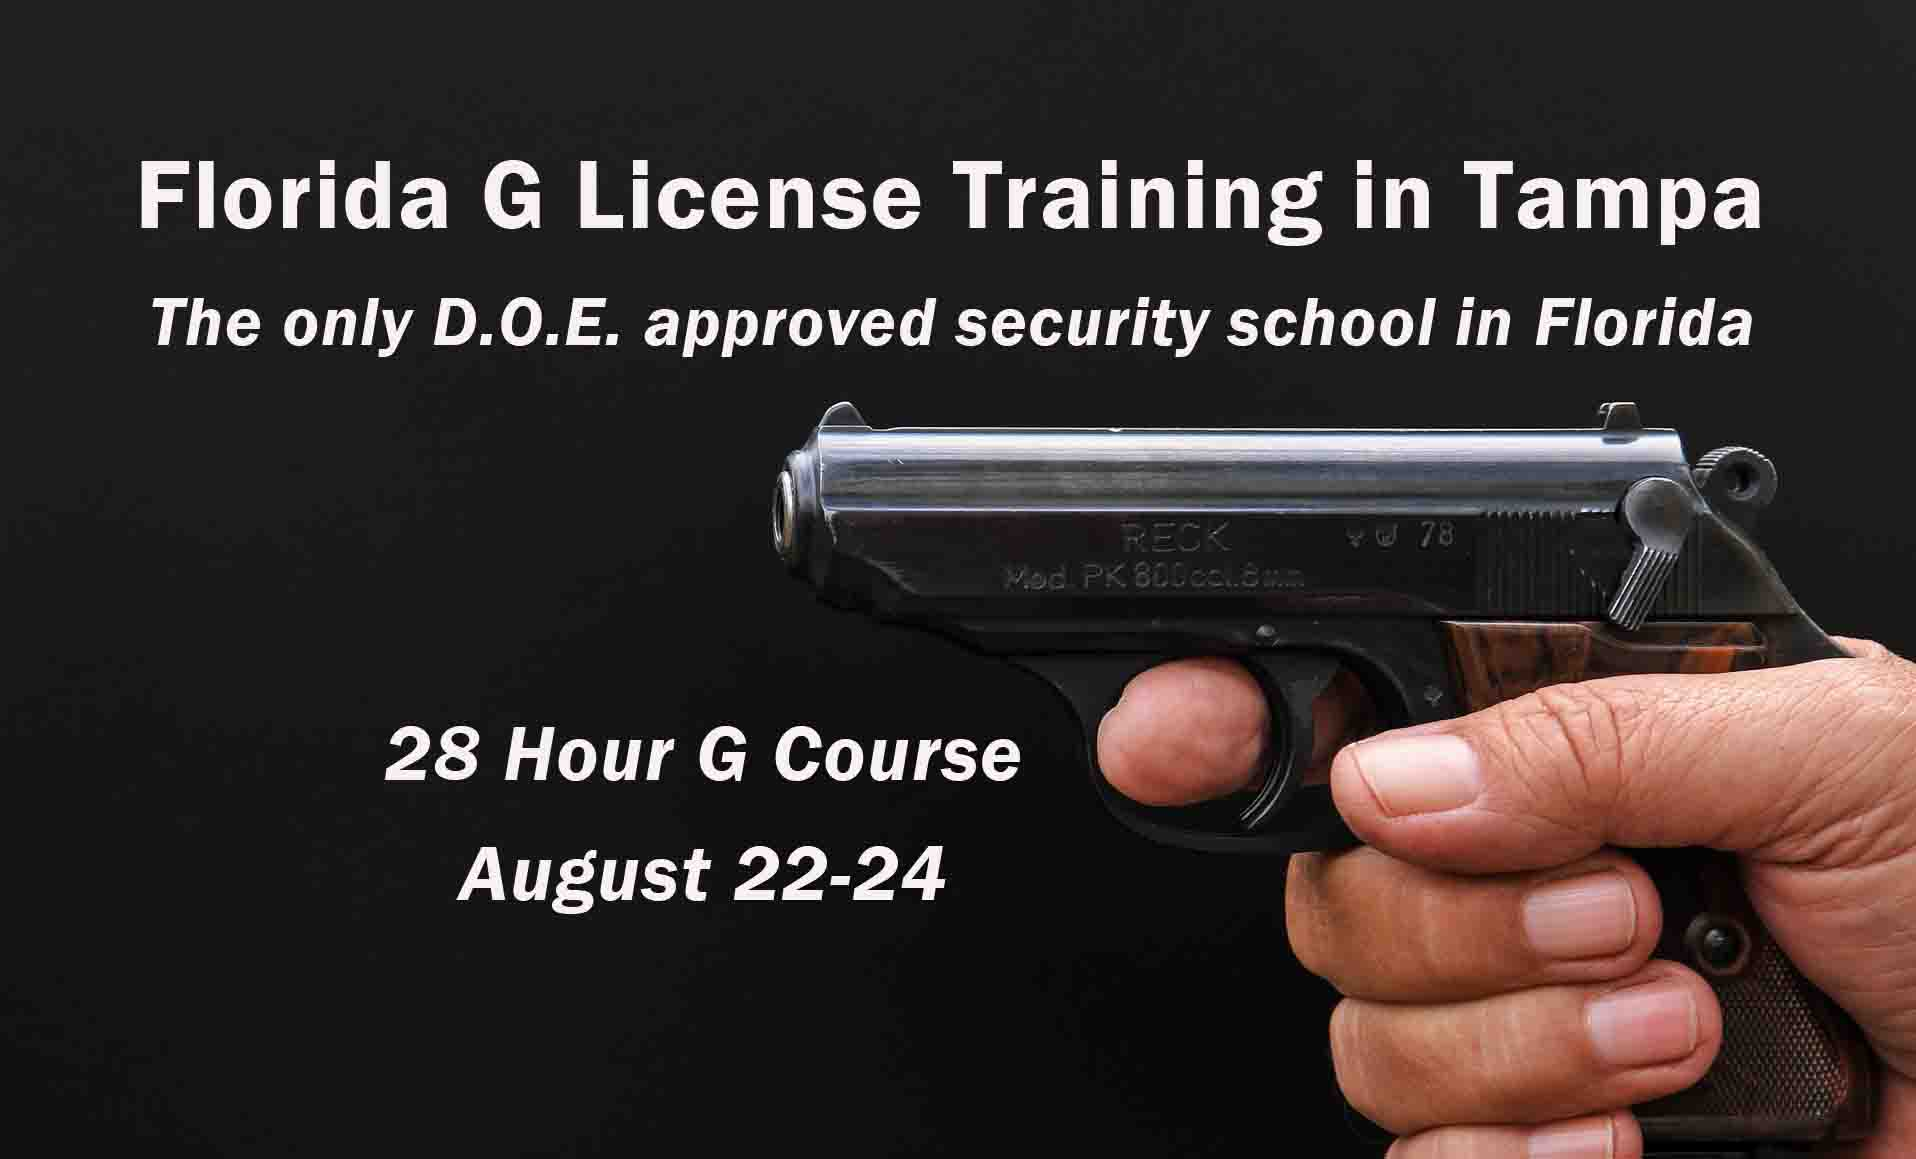 Florida G License Training in Tampa August